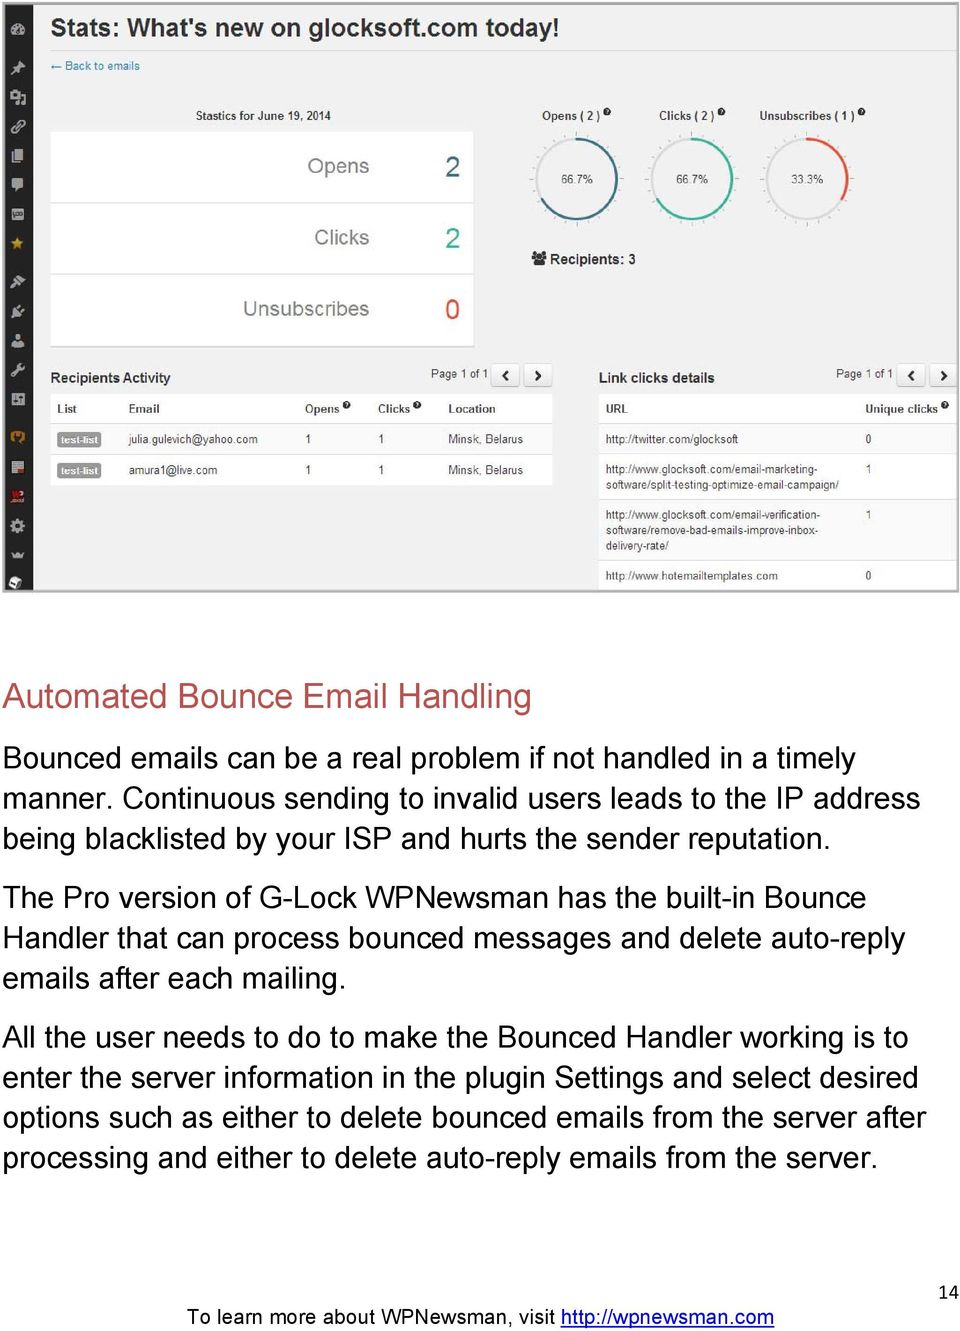 The Pro version of G-Lock WPNewsman has the built-in Bounce Handler that can process bounced messages and delete auto-reply emails after each mailing.